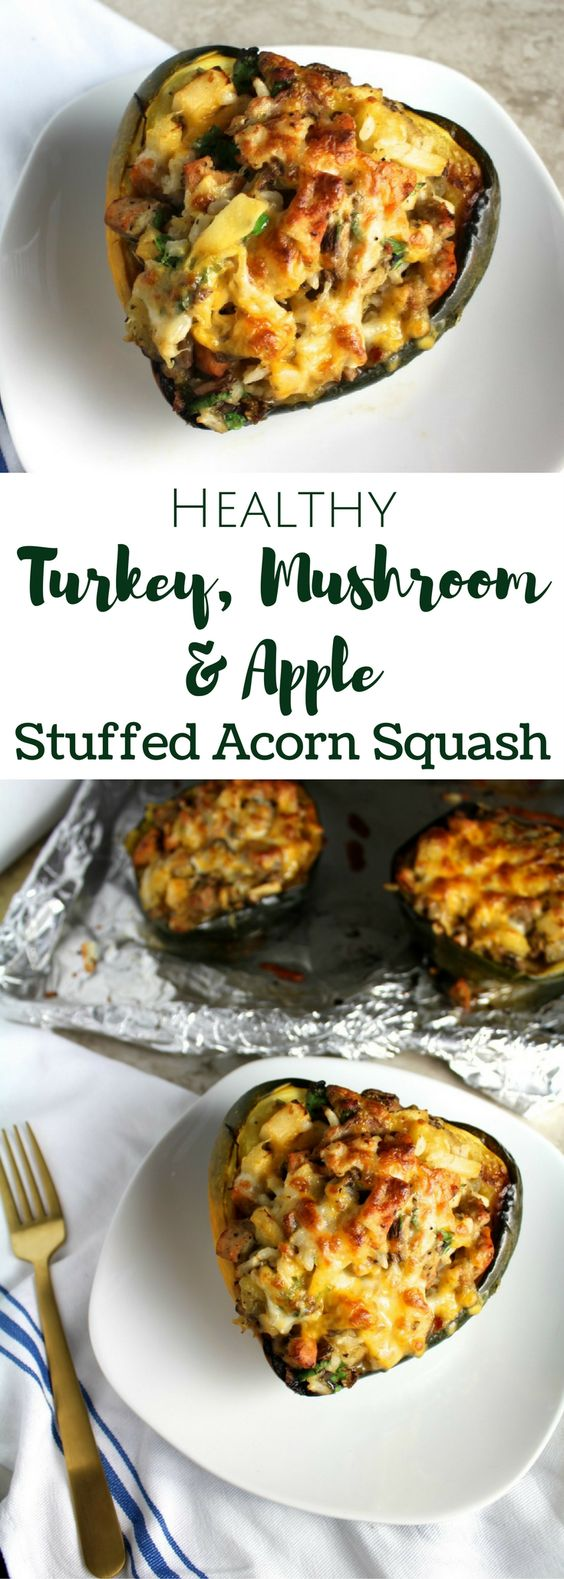 Turkey Mushroom Apple Stuffed Acorn Squash